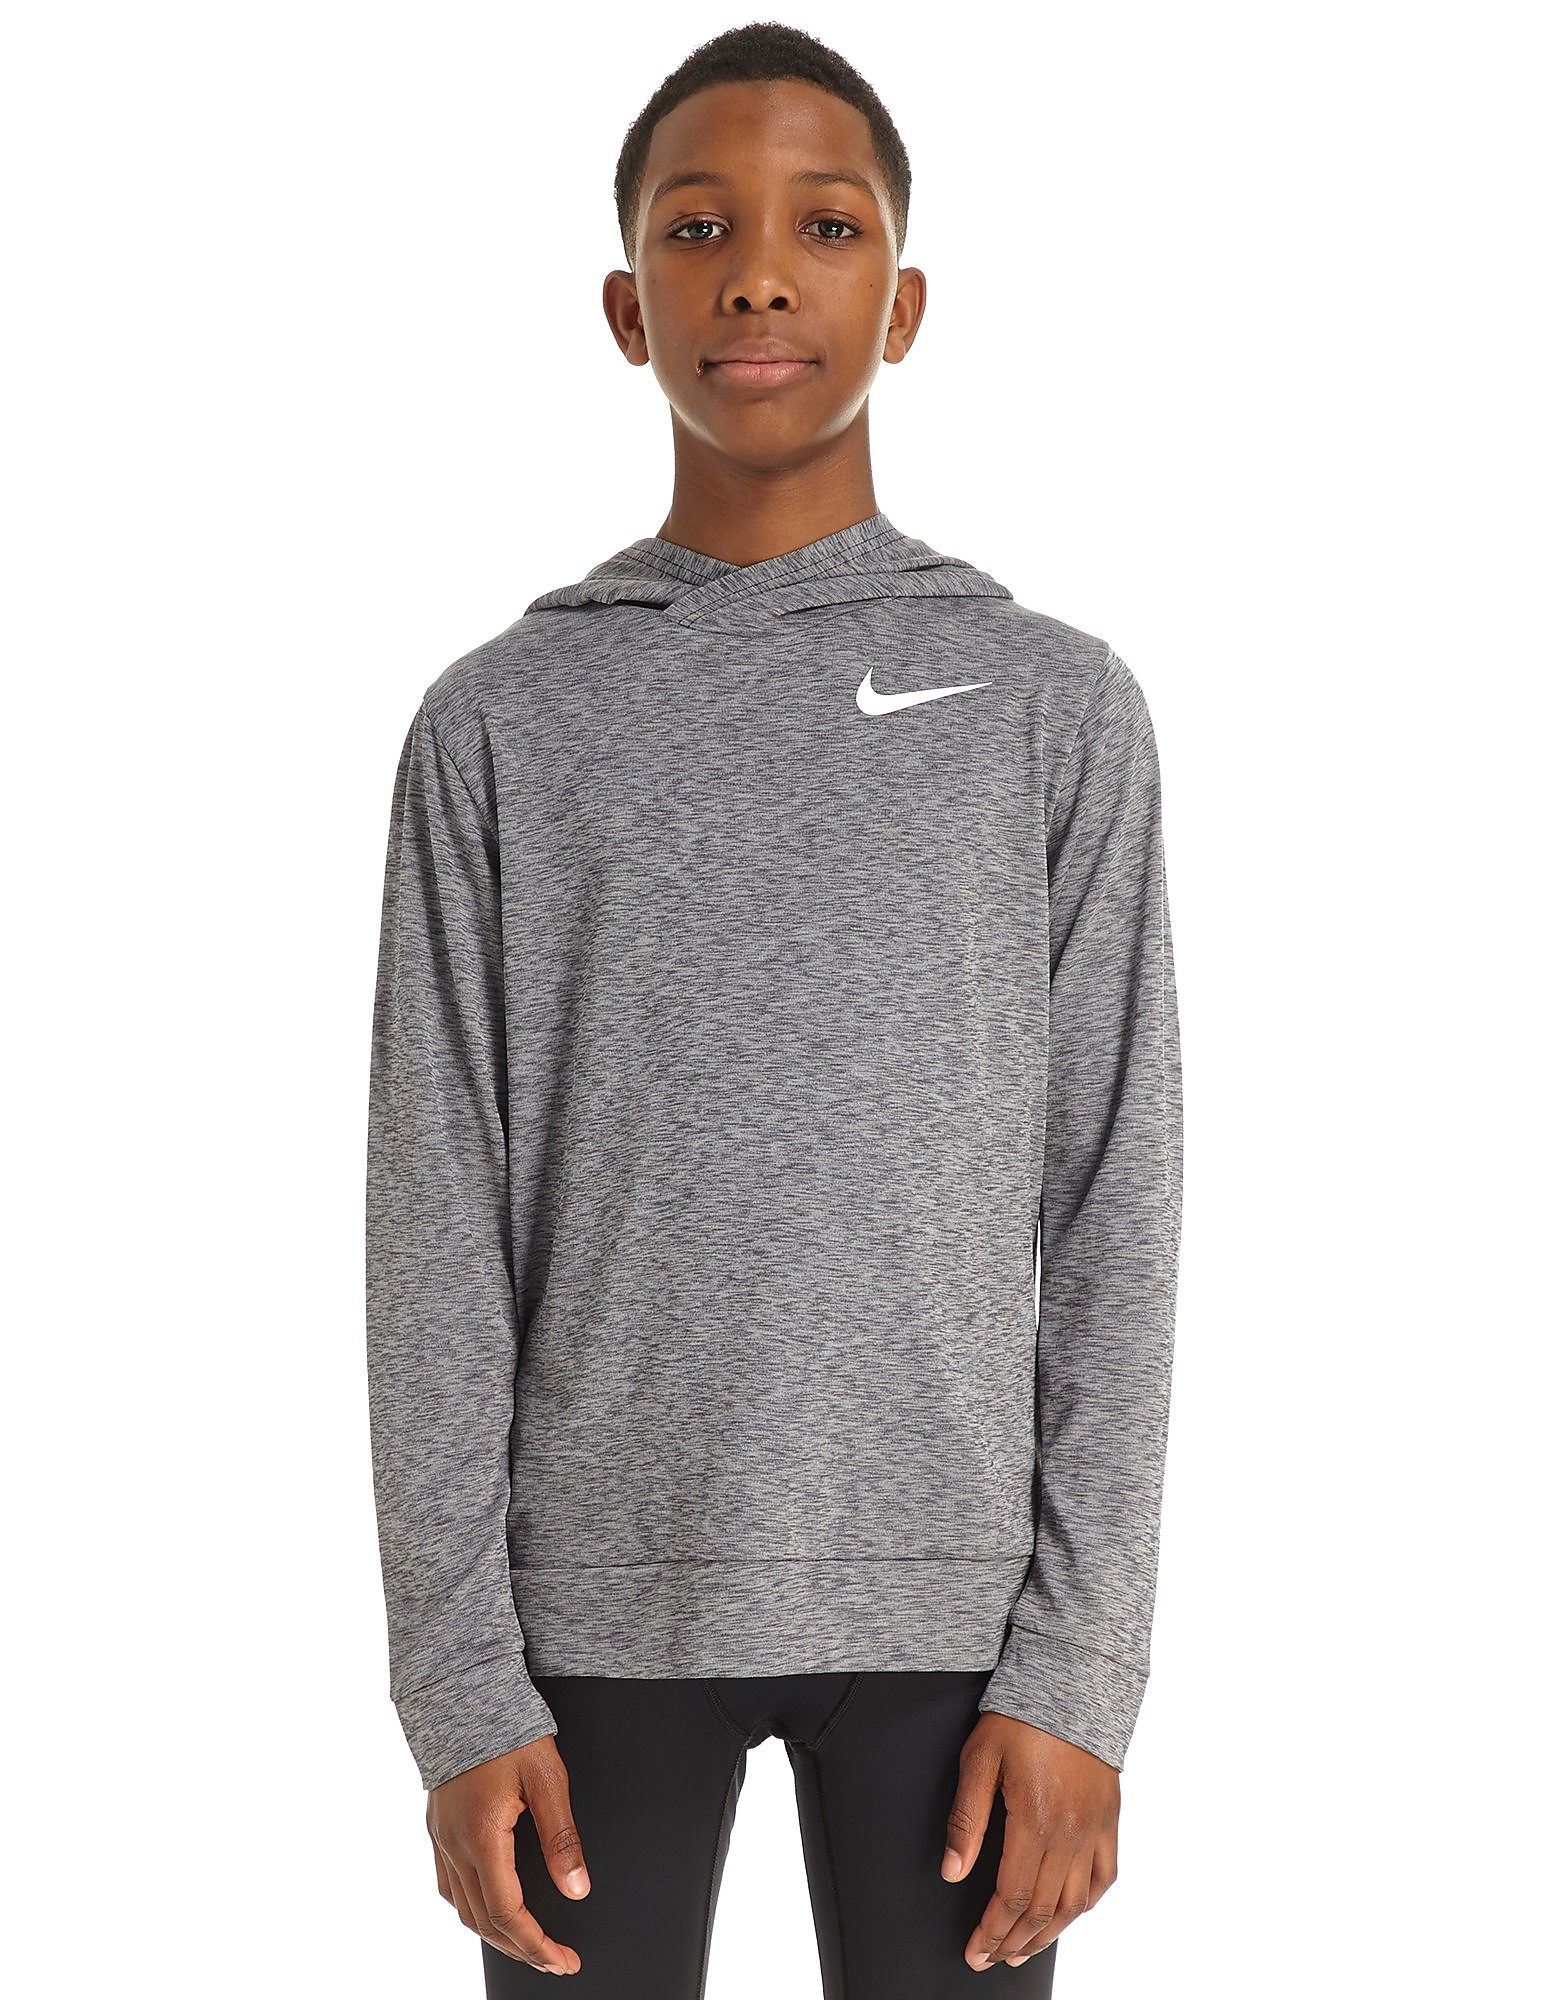 Nike Dry Hoody Junior